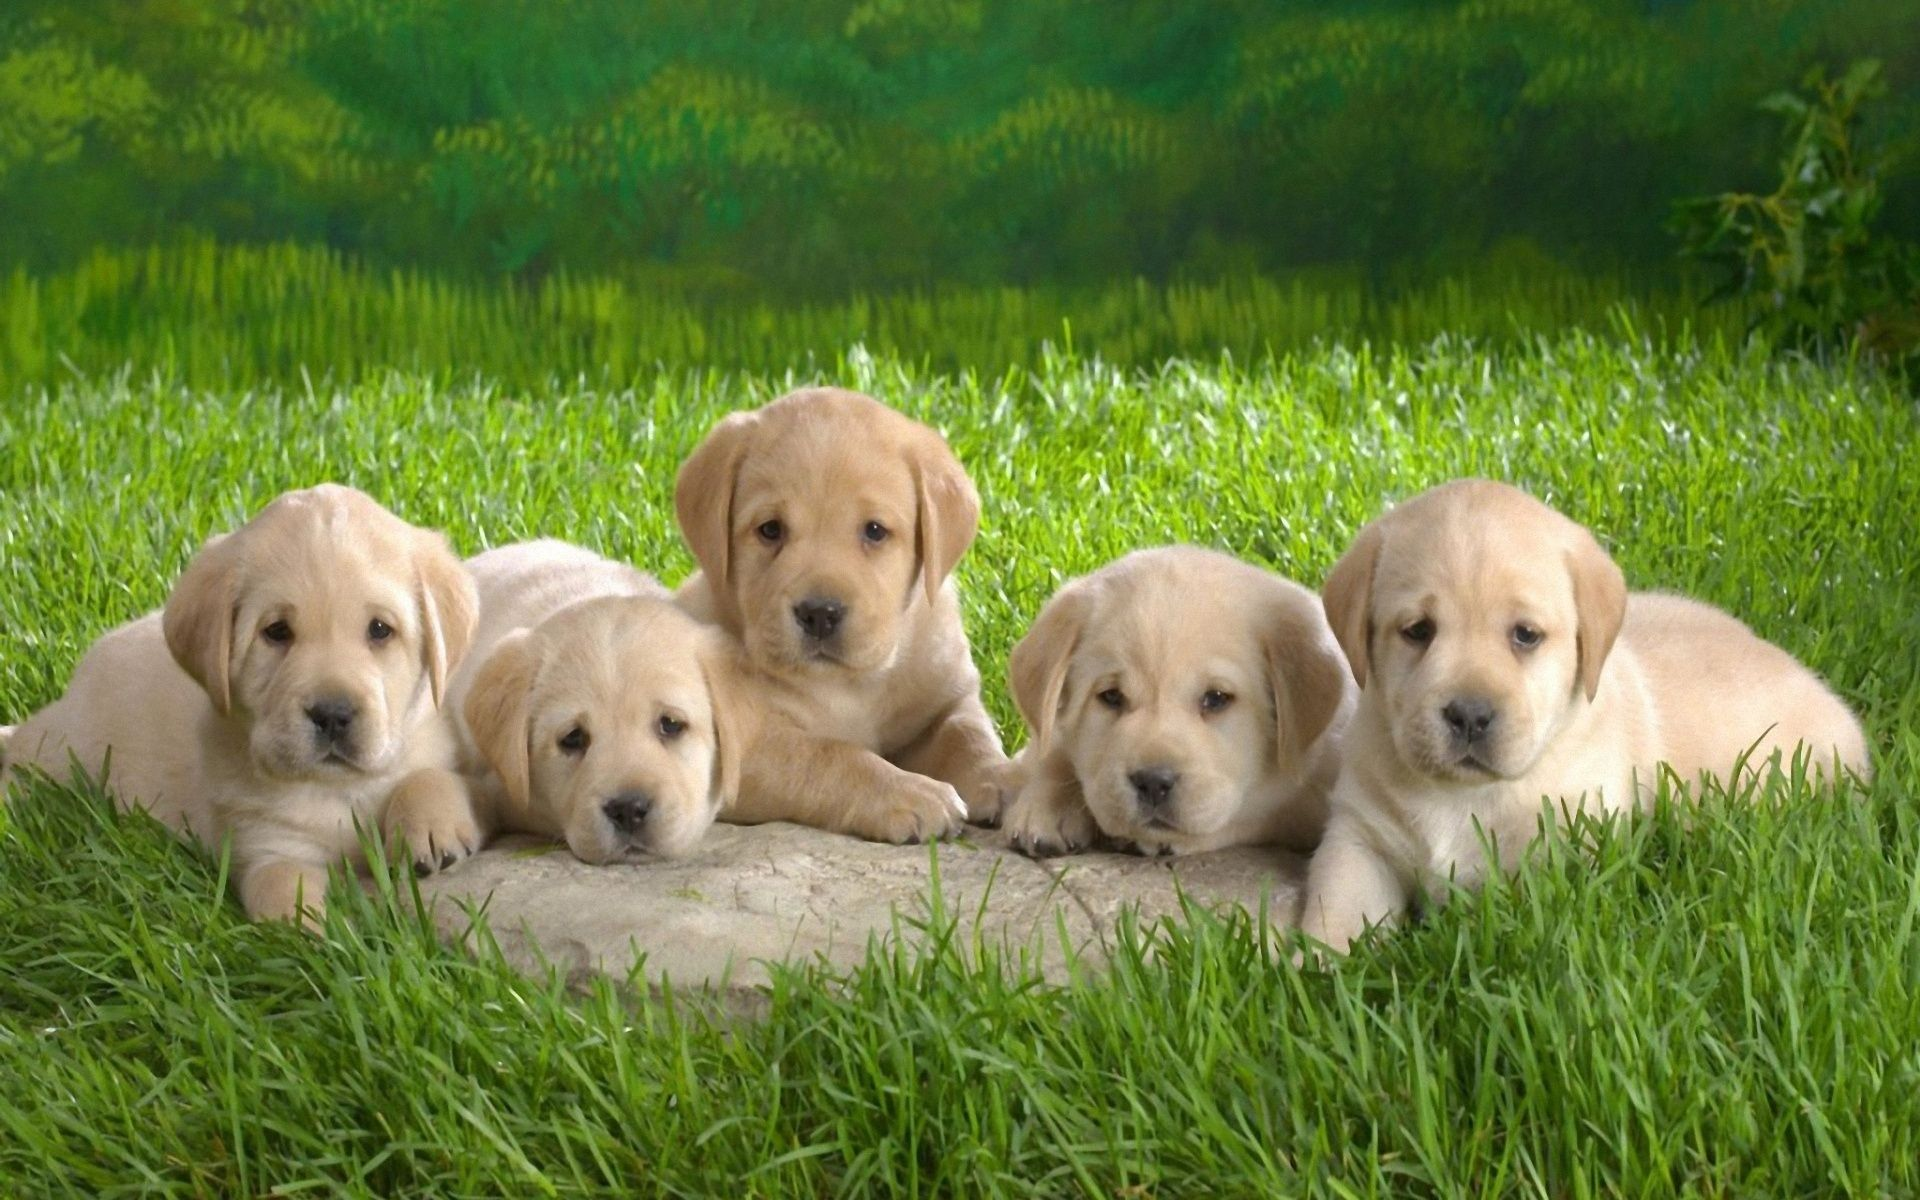 Free Puppy Wallpapers For Computer Wallpaper Cave Puppies Labrador Retriever Puppies Cute Puppies